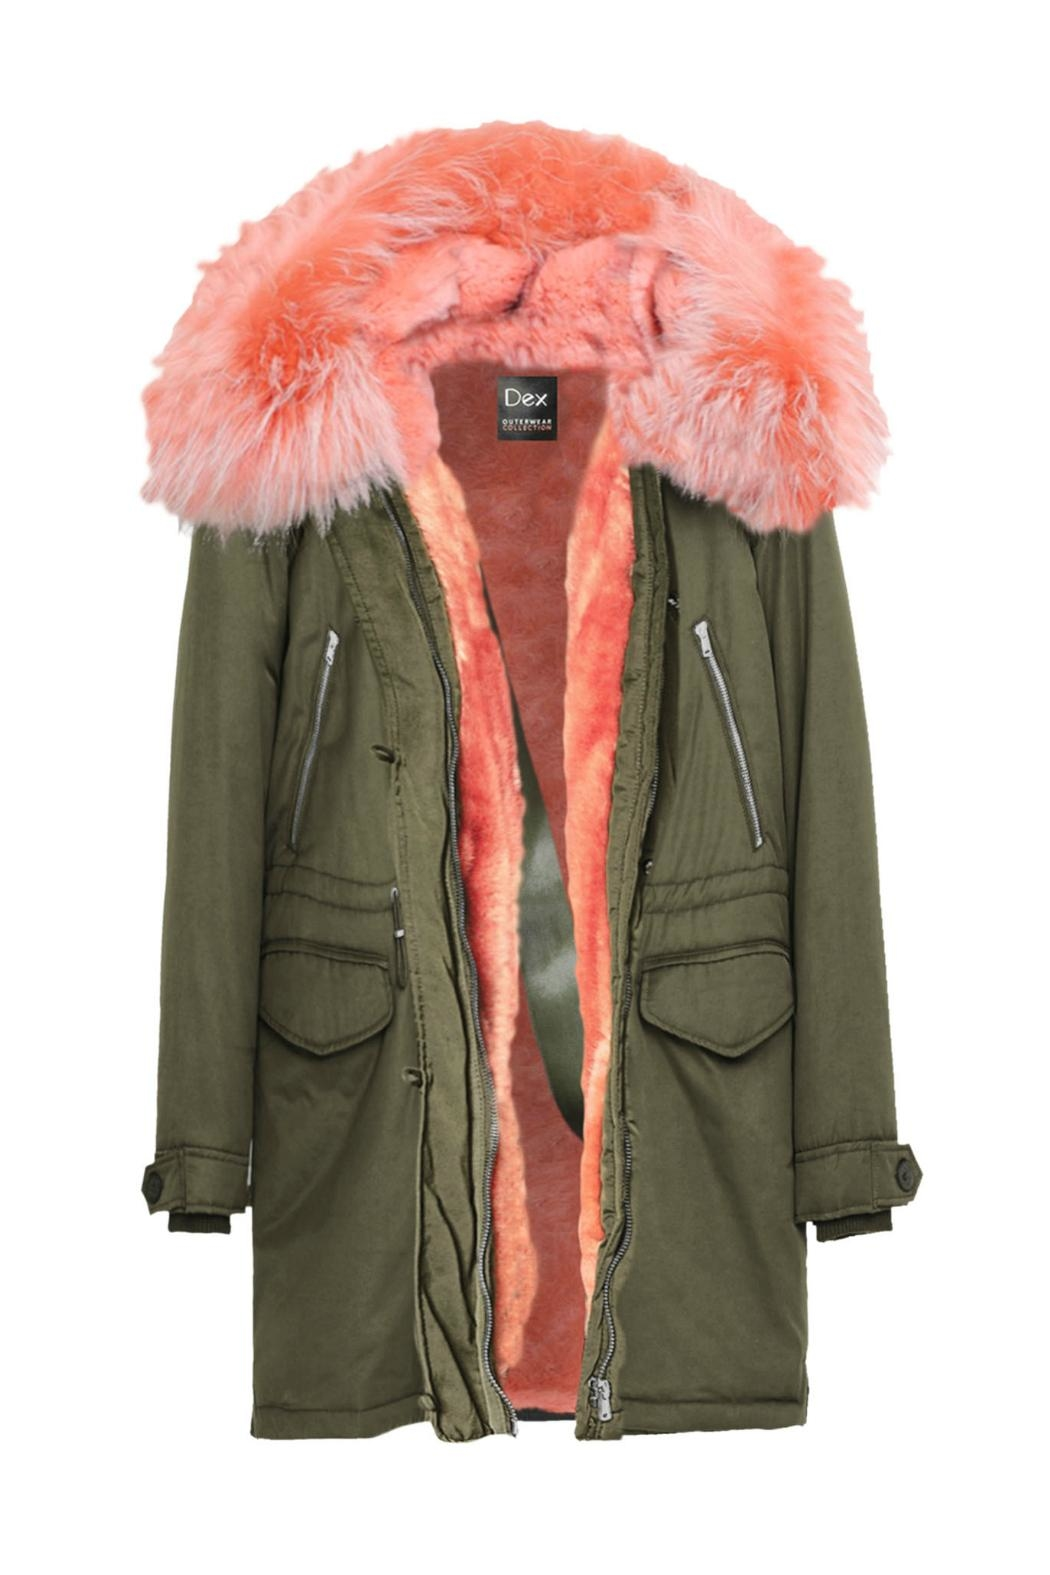 Dex Faux Fur Parka From New Jersey By Charlotte's Web